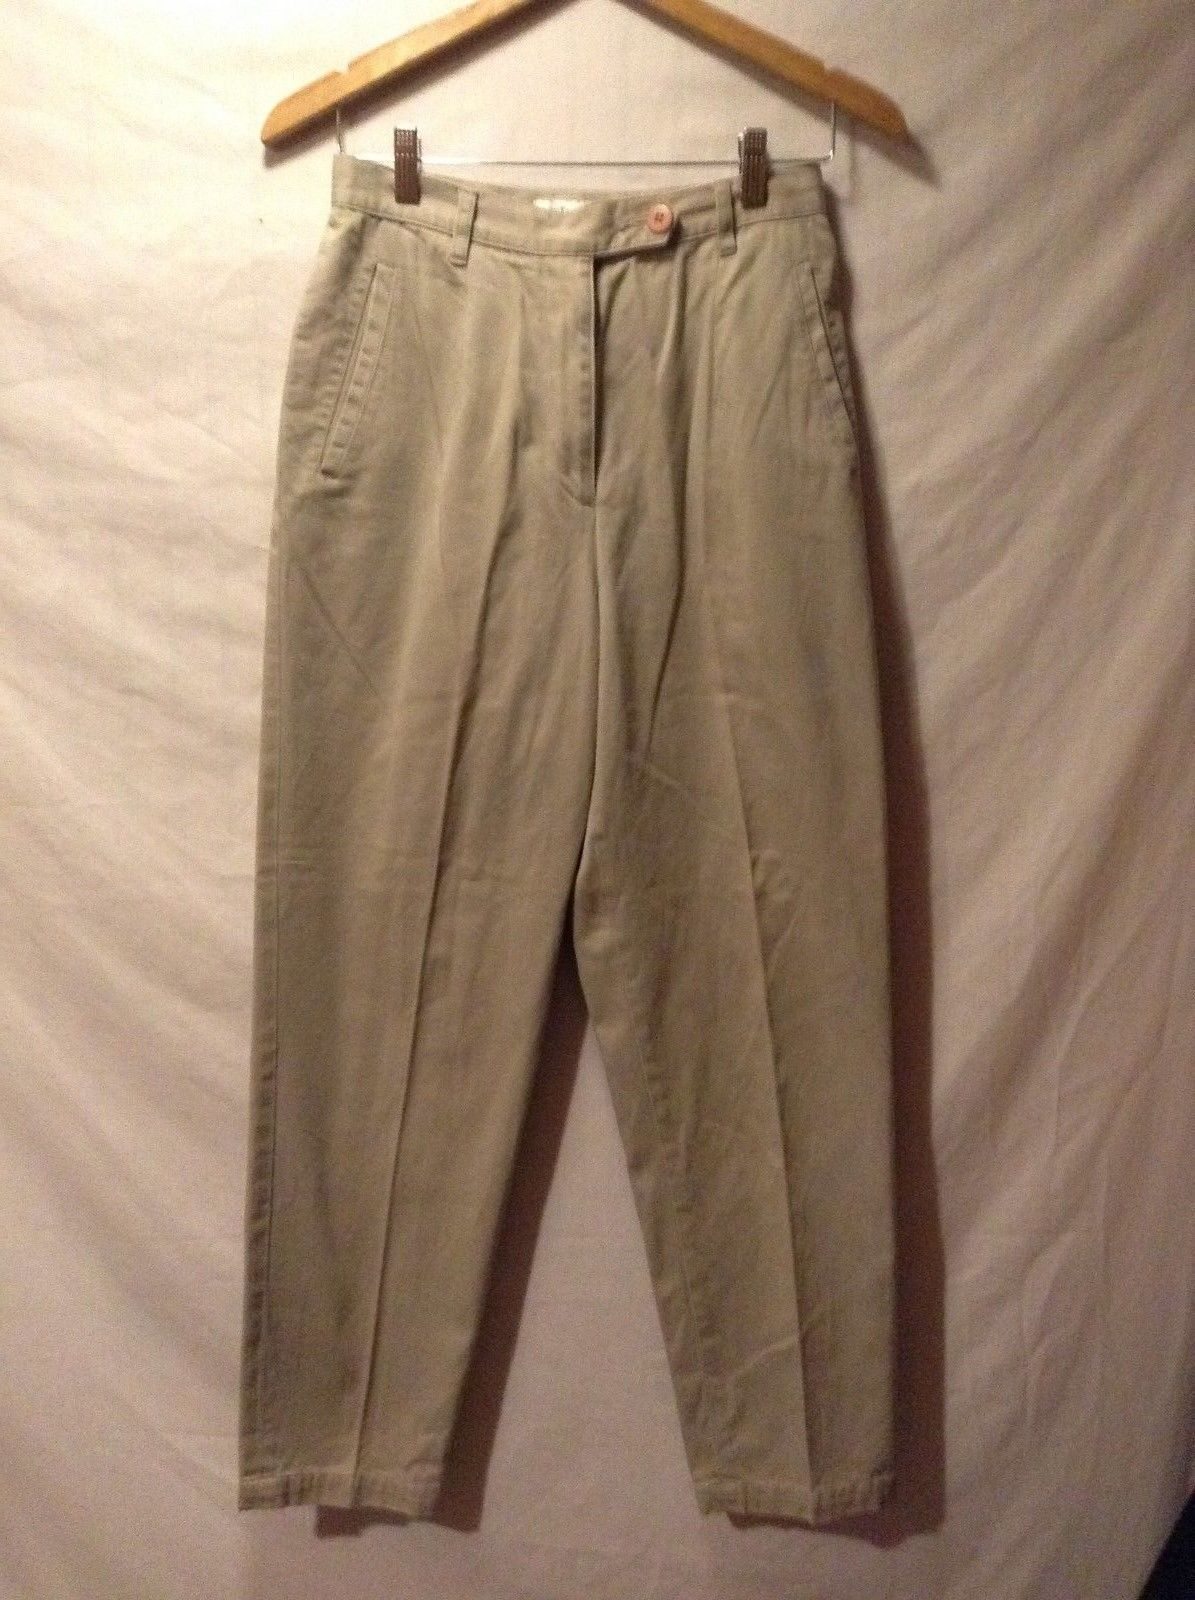 ANN TAYLOR Beige Brown Tan Pants Sz 8